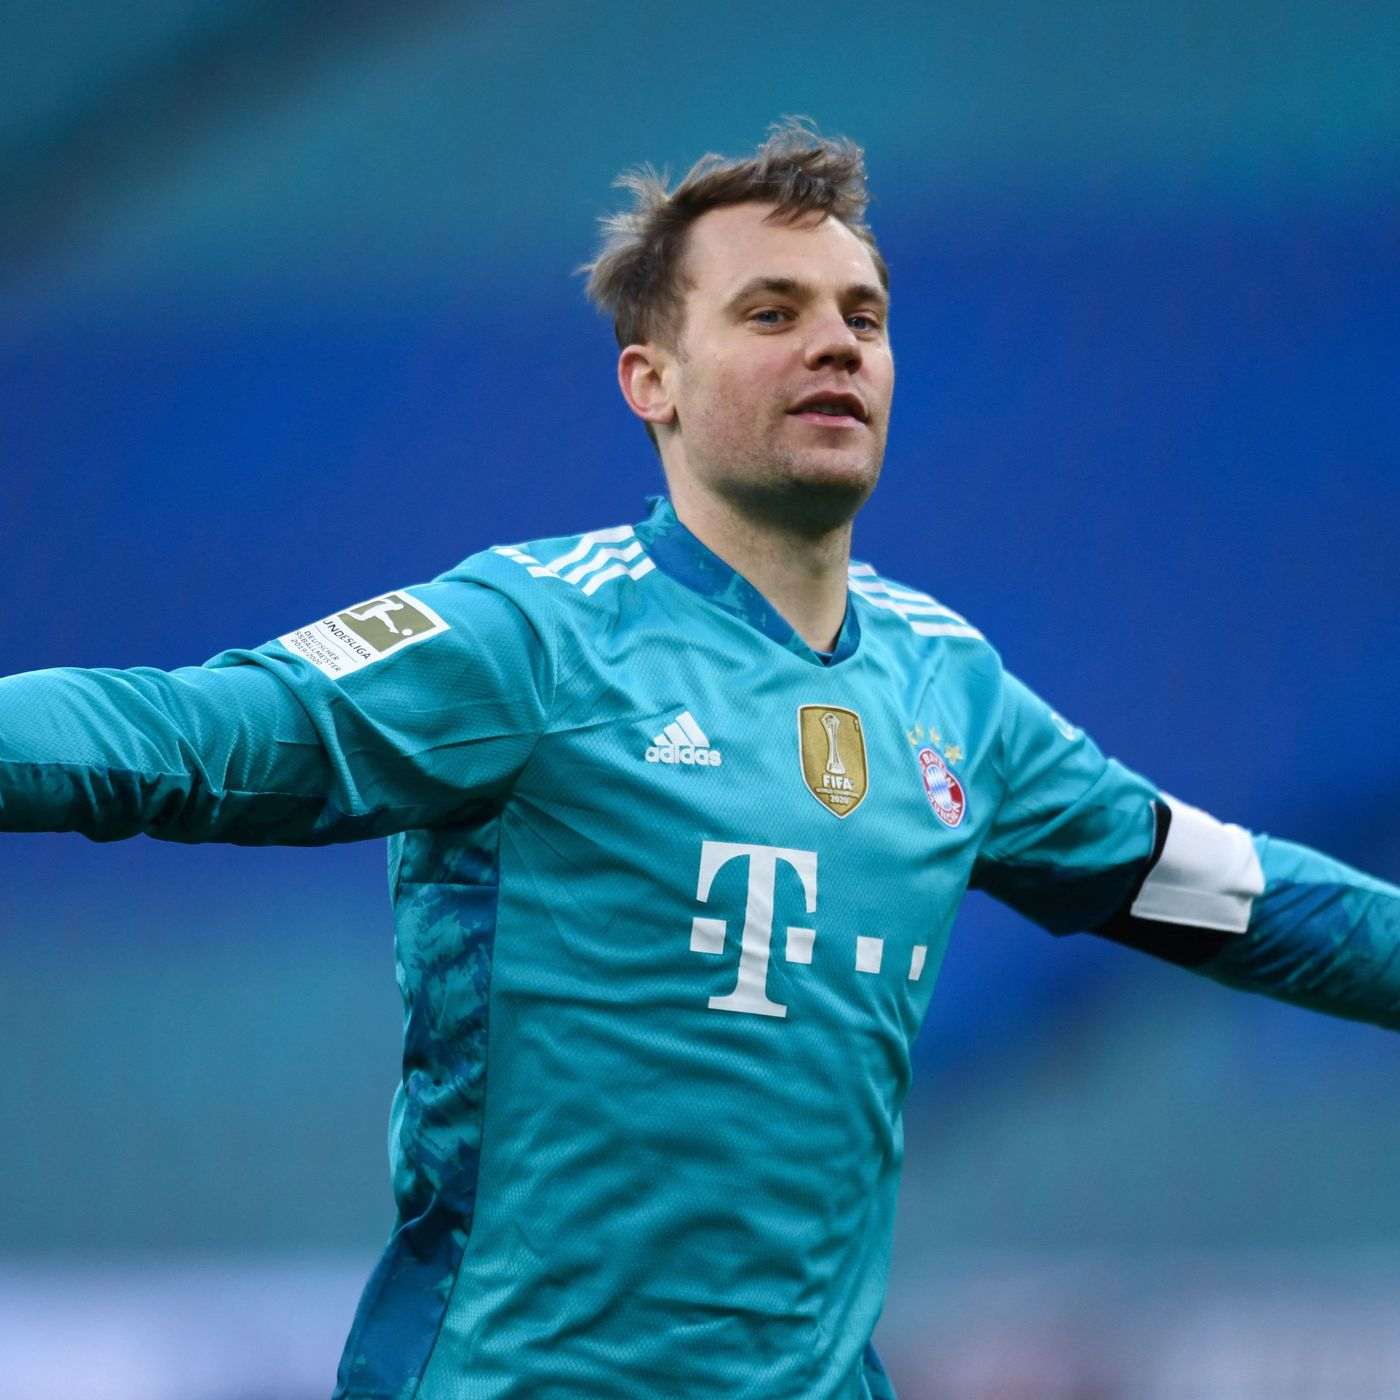 Manuel Neuer Jokes About His Net Repair Skills Reacts To Bayern Munich S 1 0 Win At Rb Leipzig Bavarian Football Works